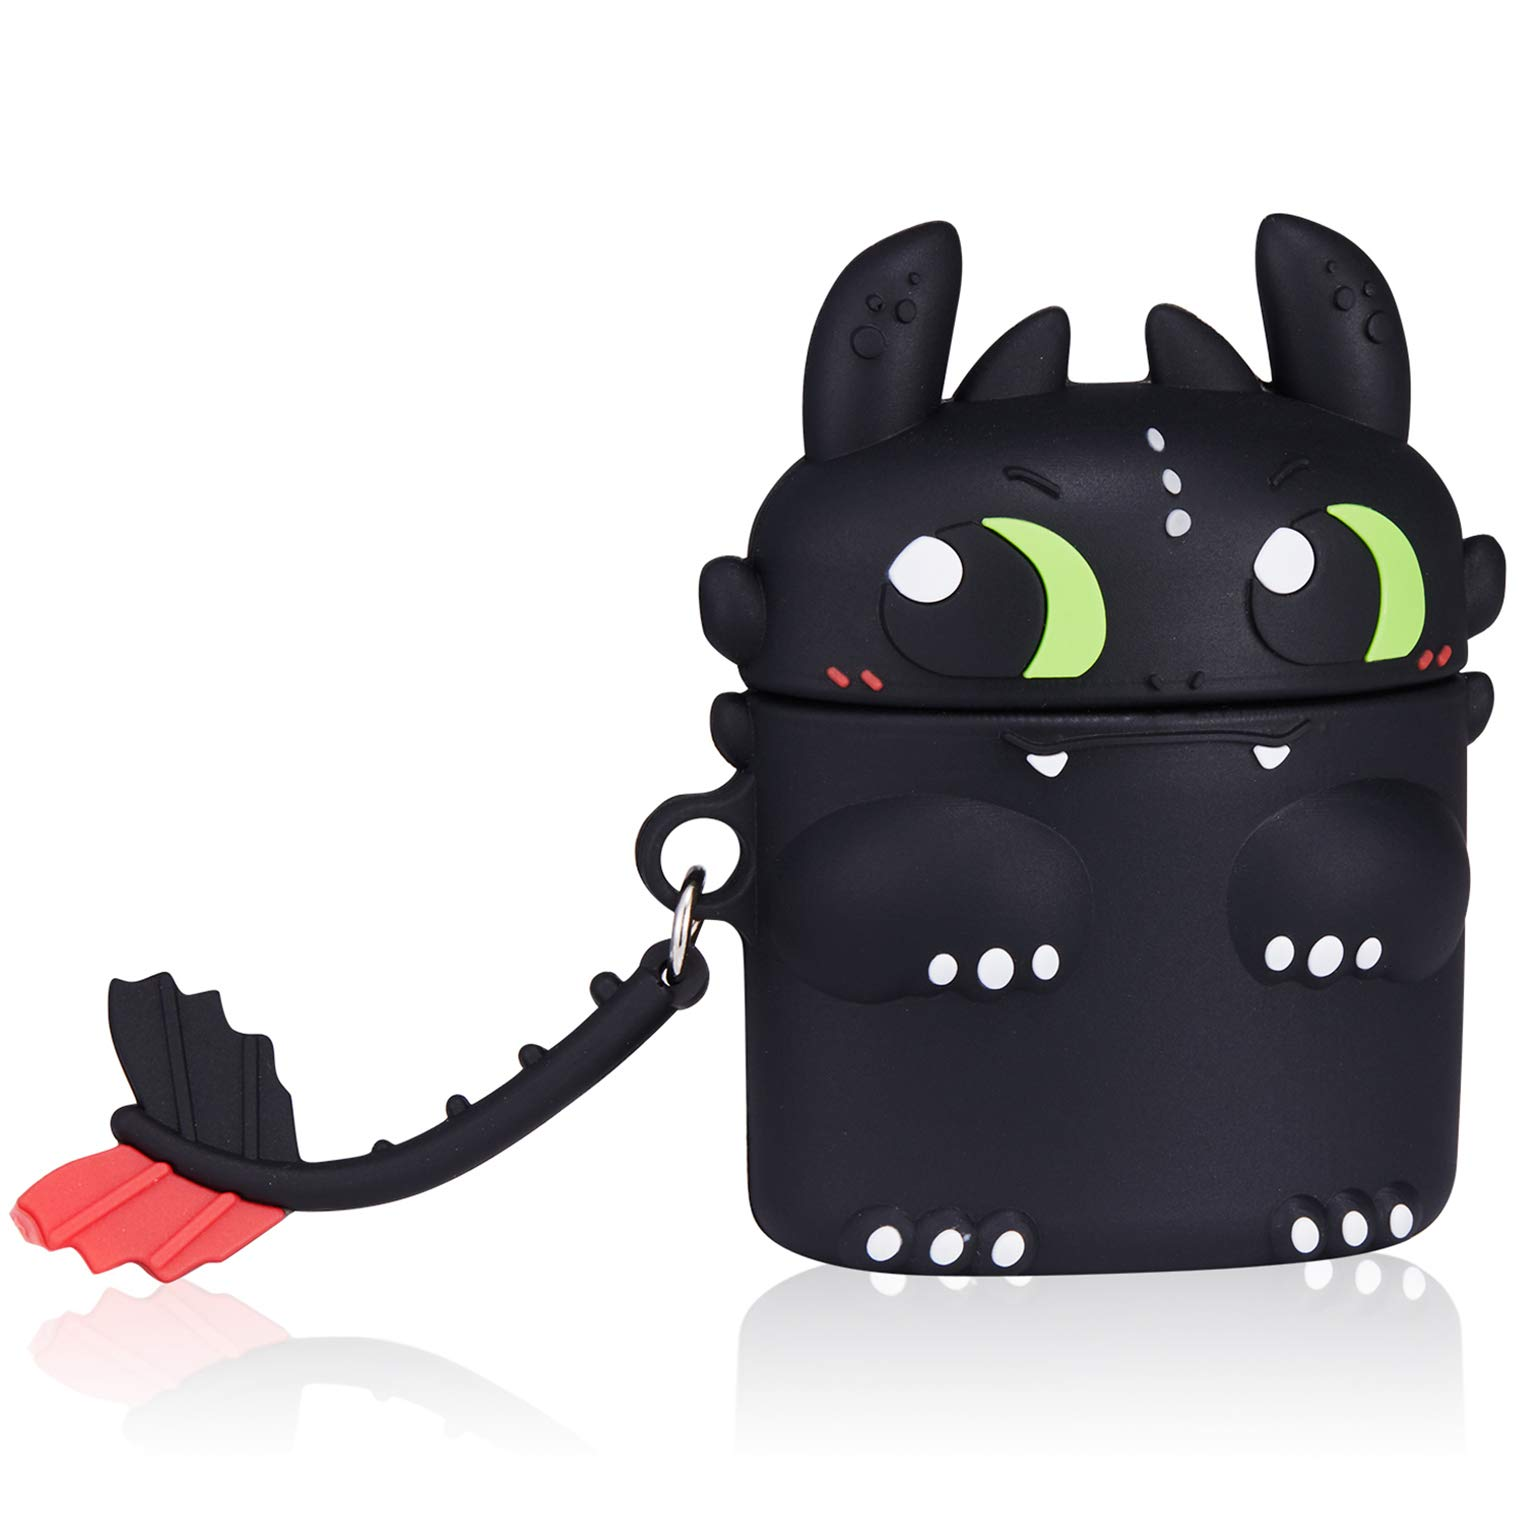 Toothless Dragon-Cute Cartoon Soft Silicone Doll Case For AirPods